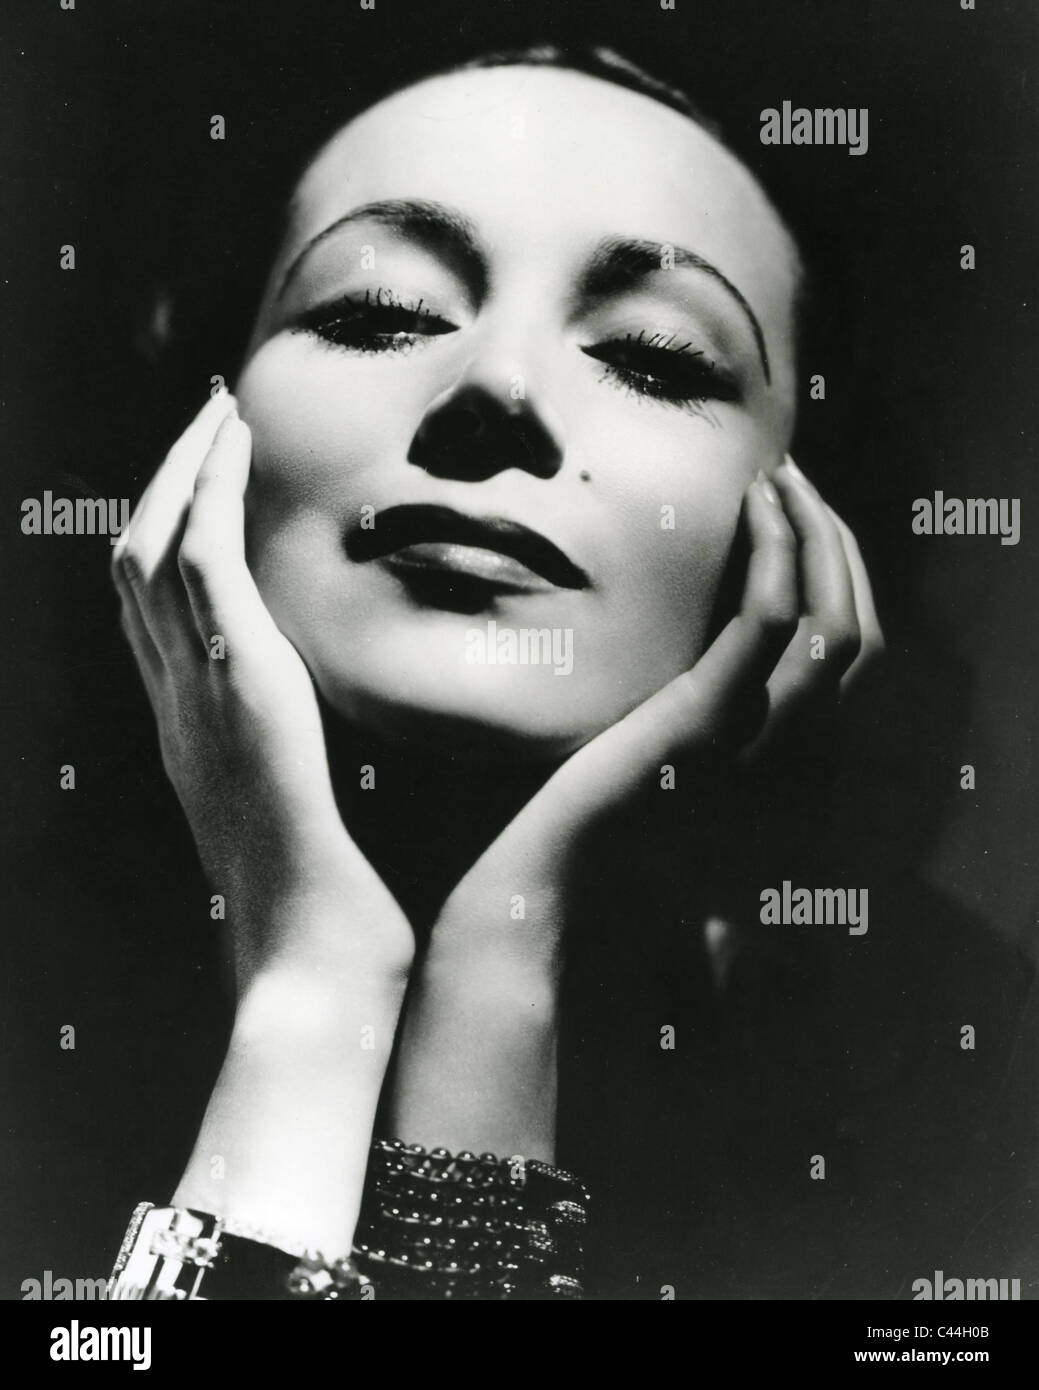 d0a651539 DOLORES del RIO (1904-1983) Mexican film actress about 1940 - Stock Image